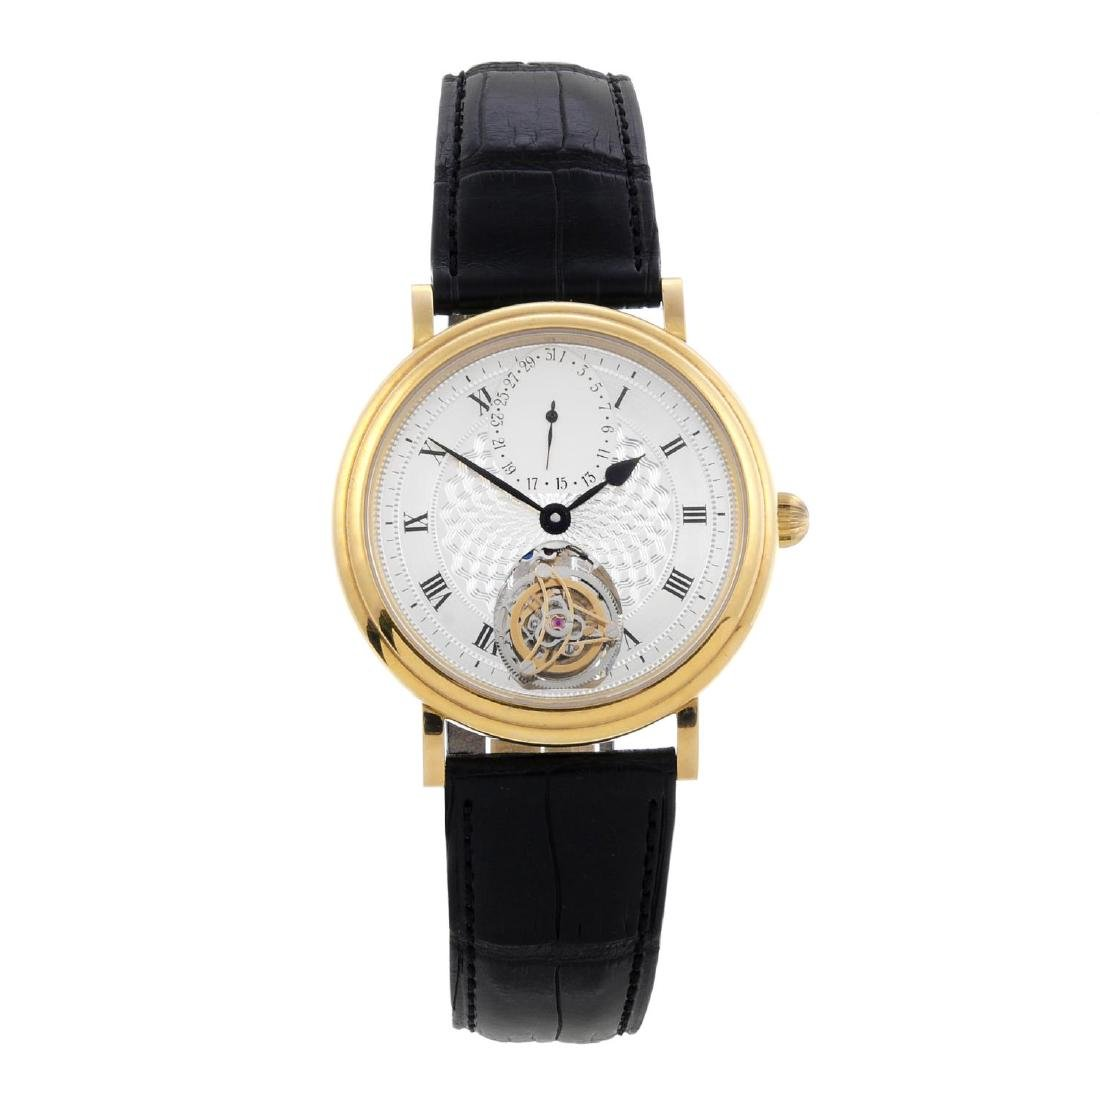 THEO FABERGÉ - a limited edition gentleman's